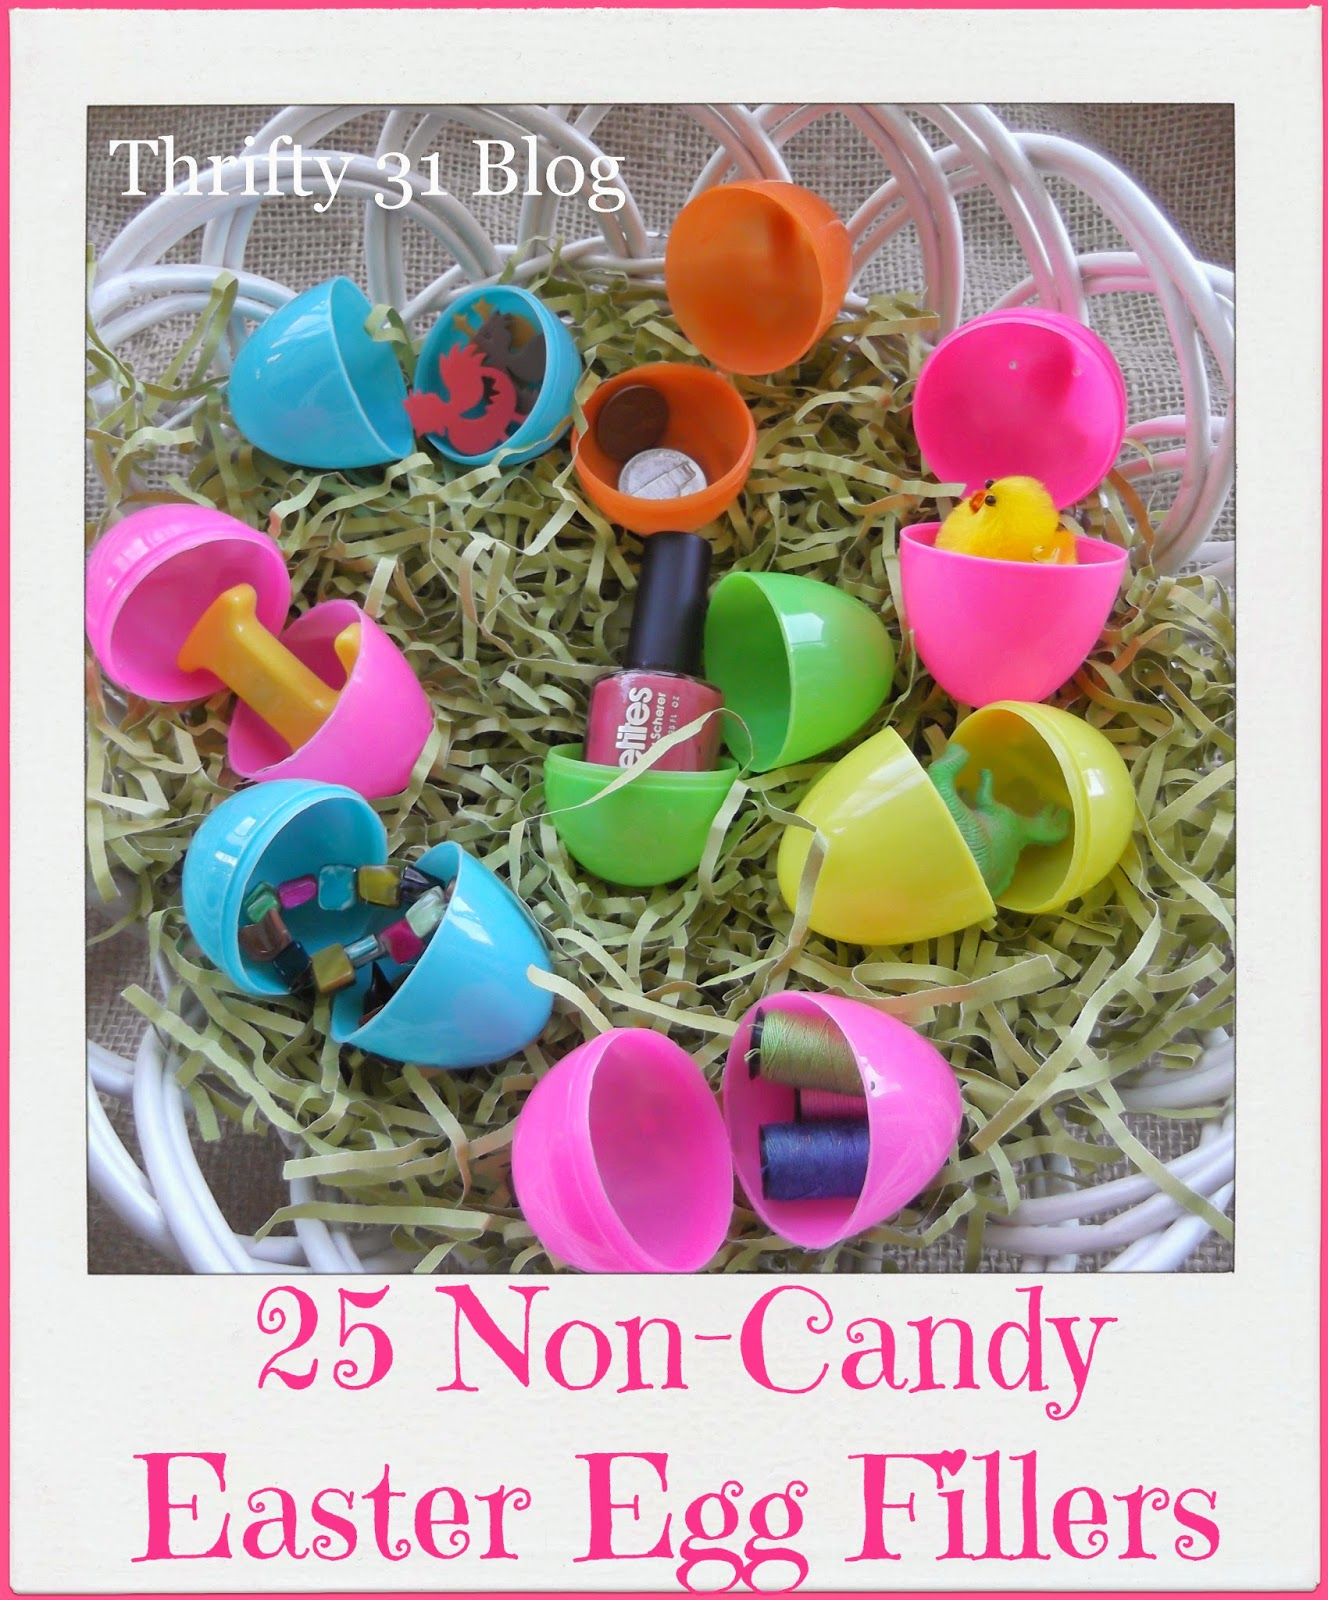 thrifty 31 blog: 25 non-candy easter egg fillers